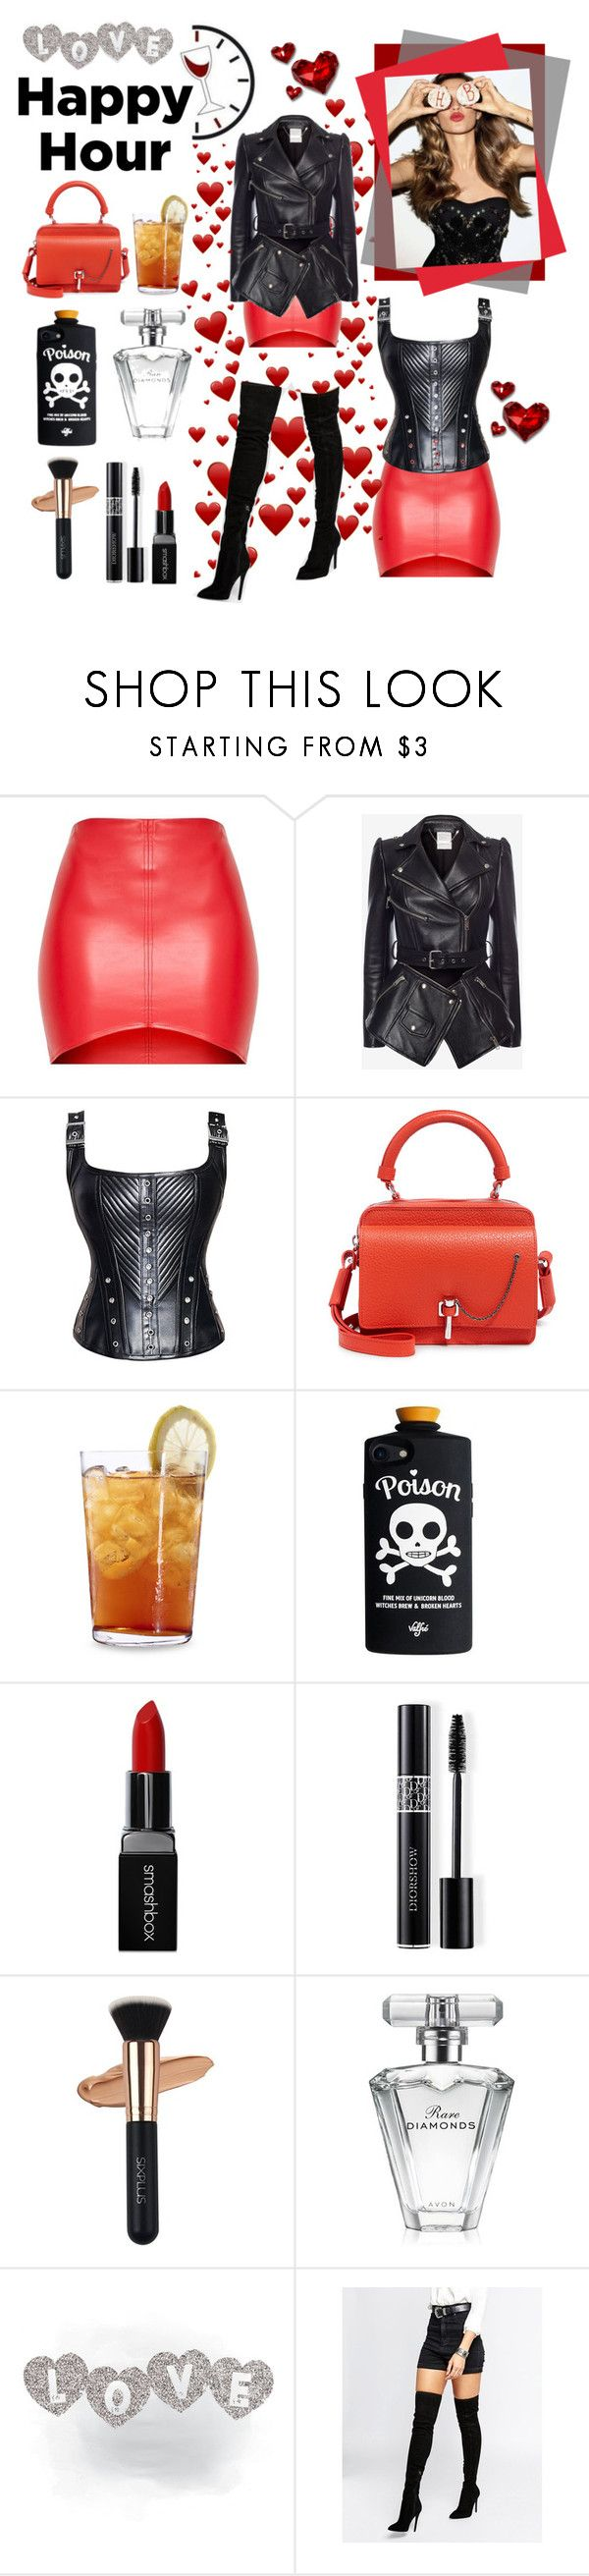 """""""Lovely red"""" by belen-cool-look on Polyvore featuring moda, Alexander McQueen, Carven, Schott Zwiesel, Smashbox, Christian Dior, Avon y Kendall + Kylie"""